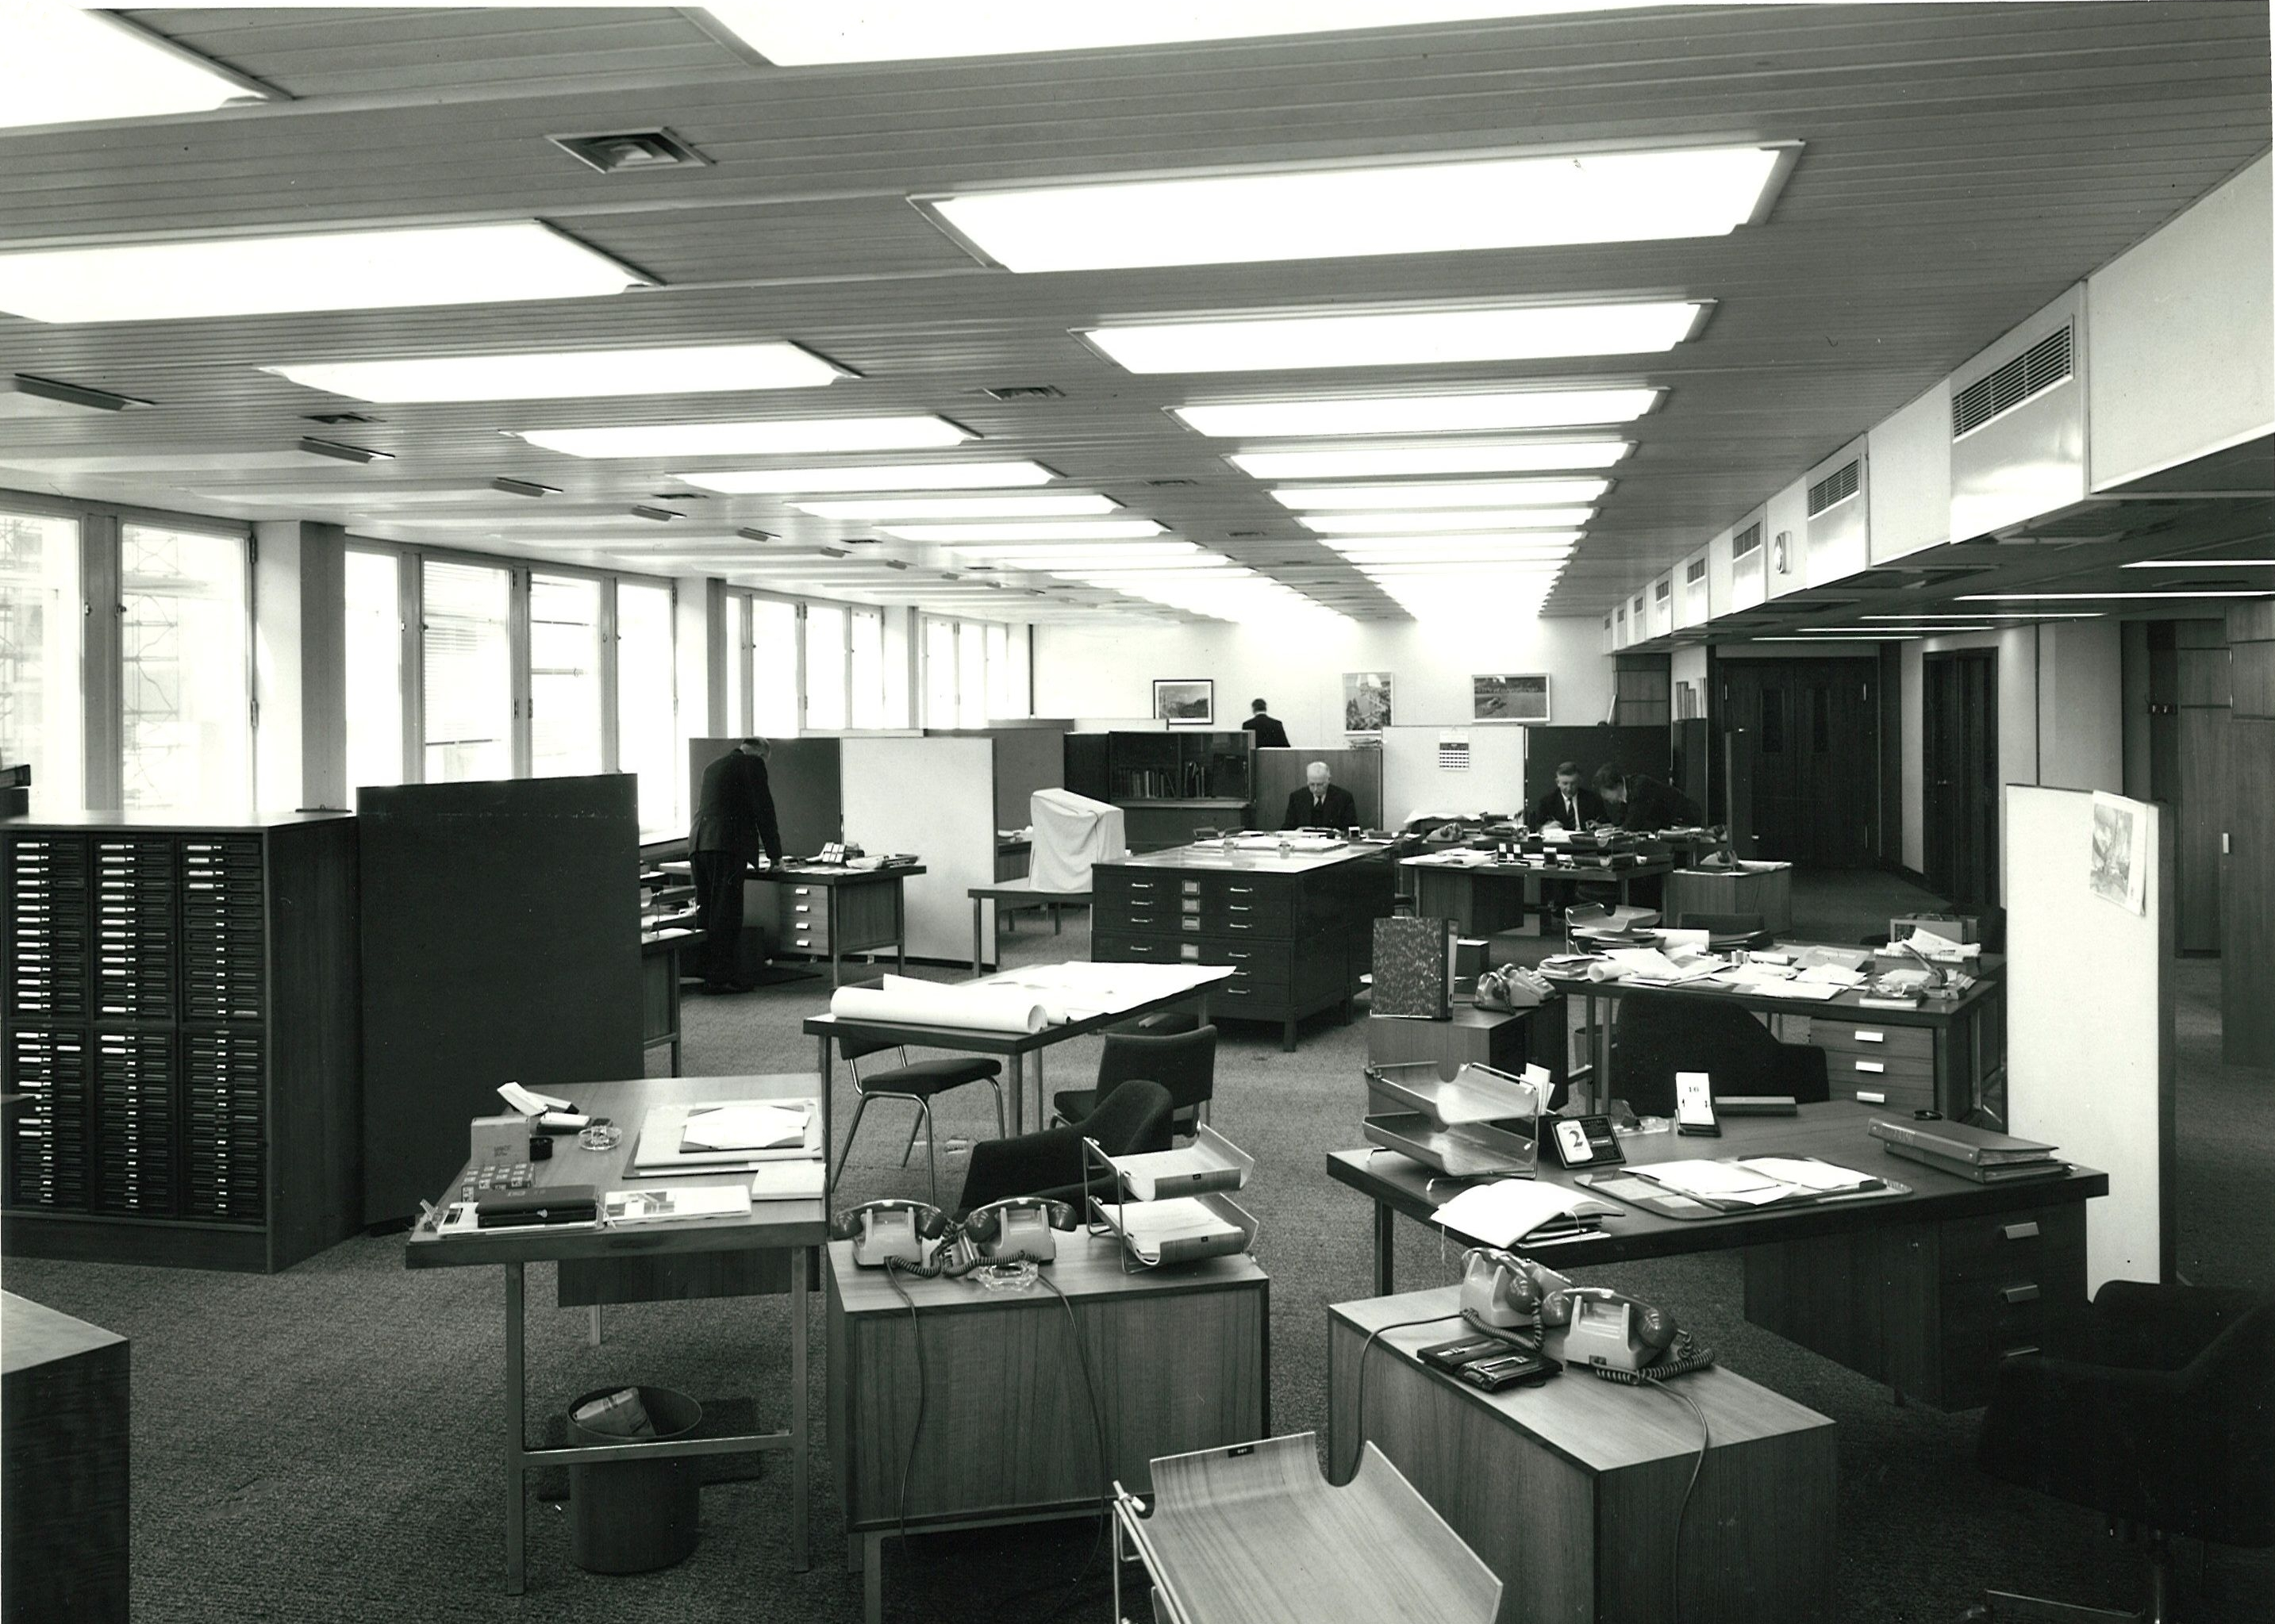 delmatic-archive-60s-office-interior-1